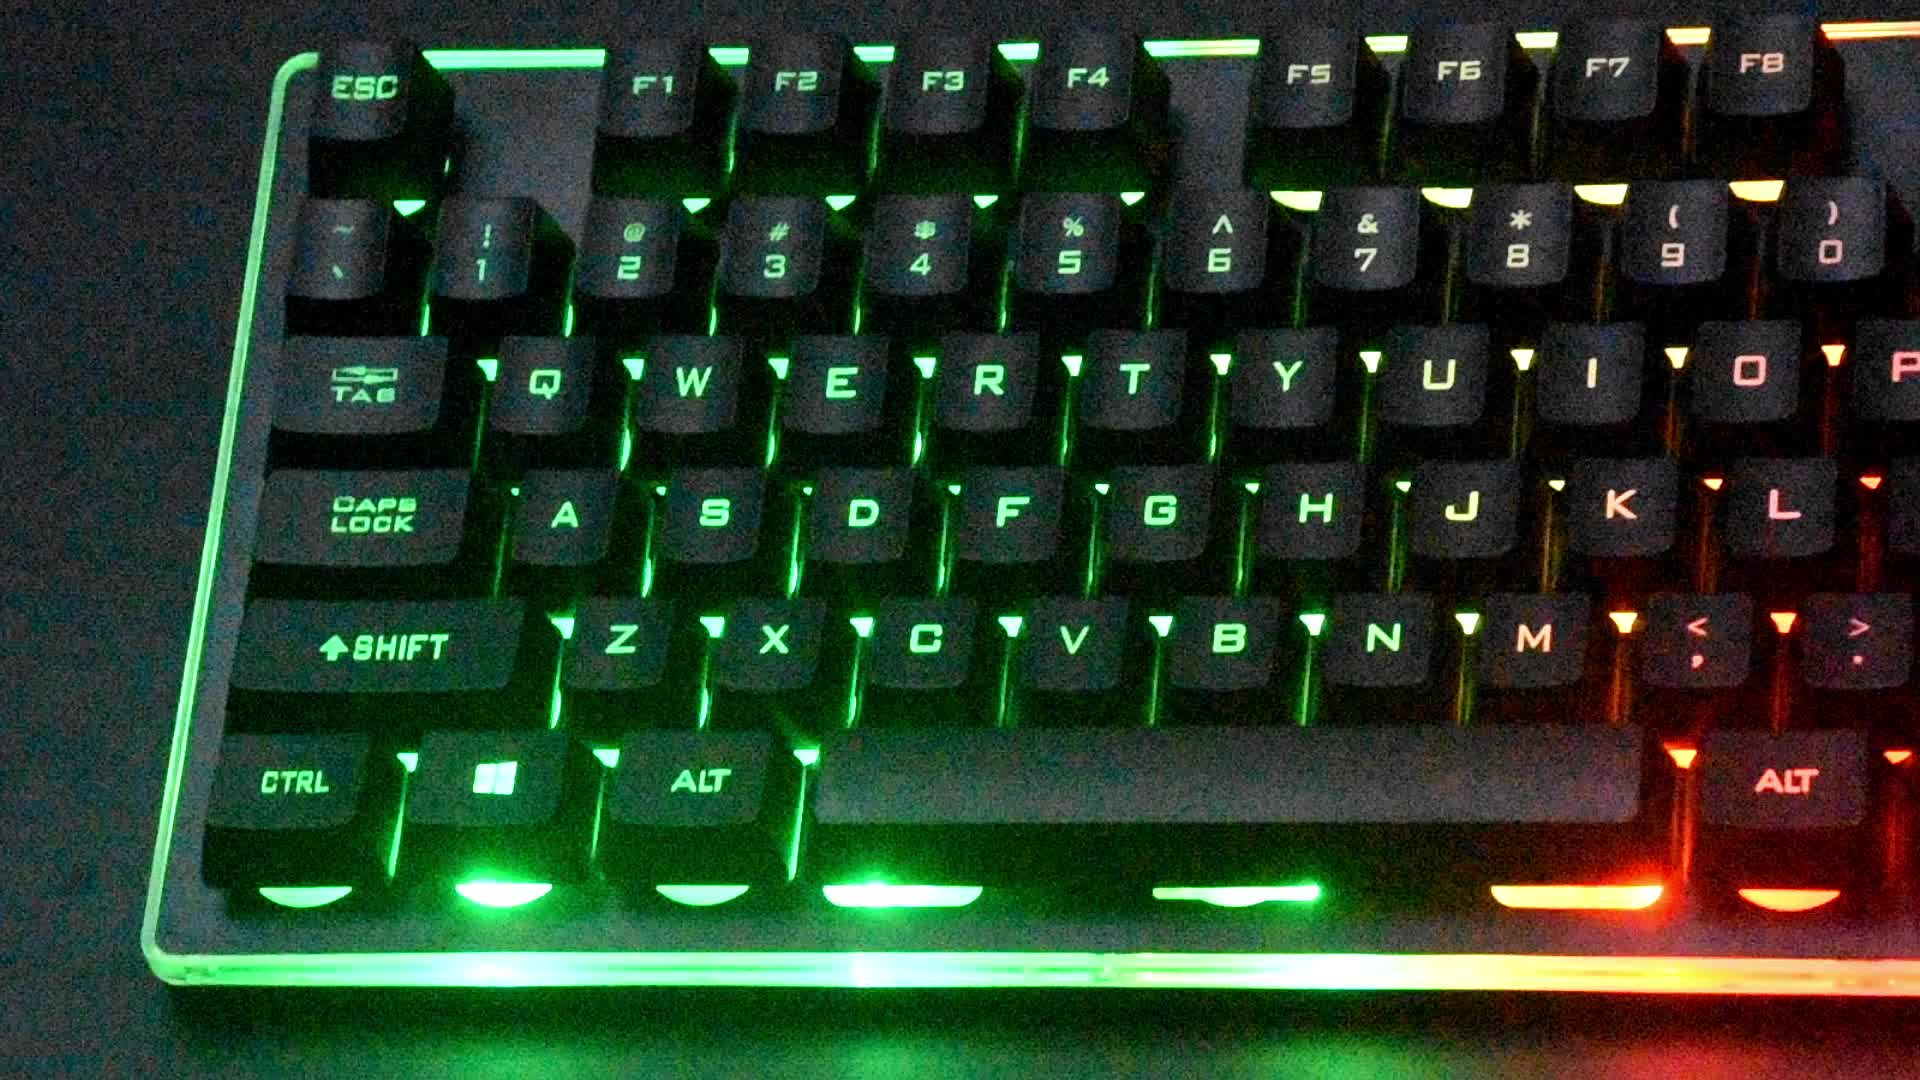 2019 hot selling factory price 3 color backlit wired Gaming ergonomic half mechanical keyboard for professional gamer